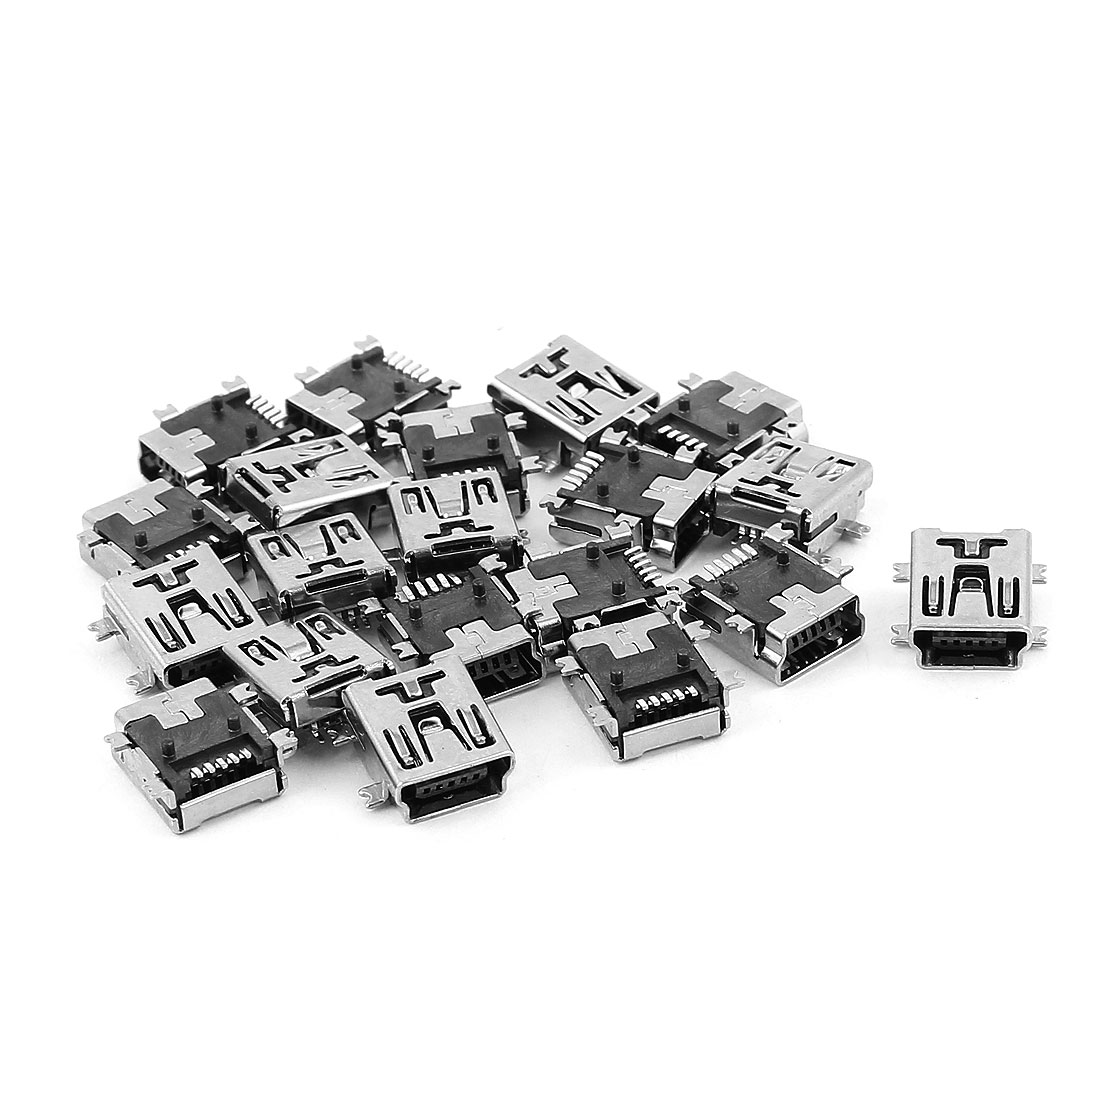 20Pcs USB Mini Type B Female Socket 5-Pin Jack Connector Adapter